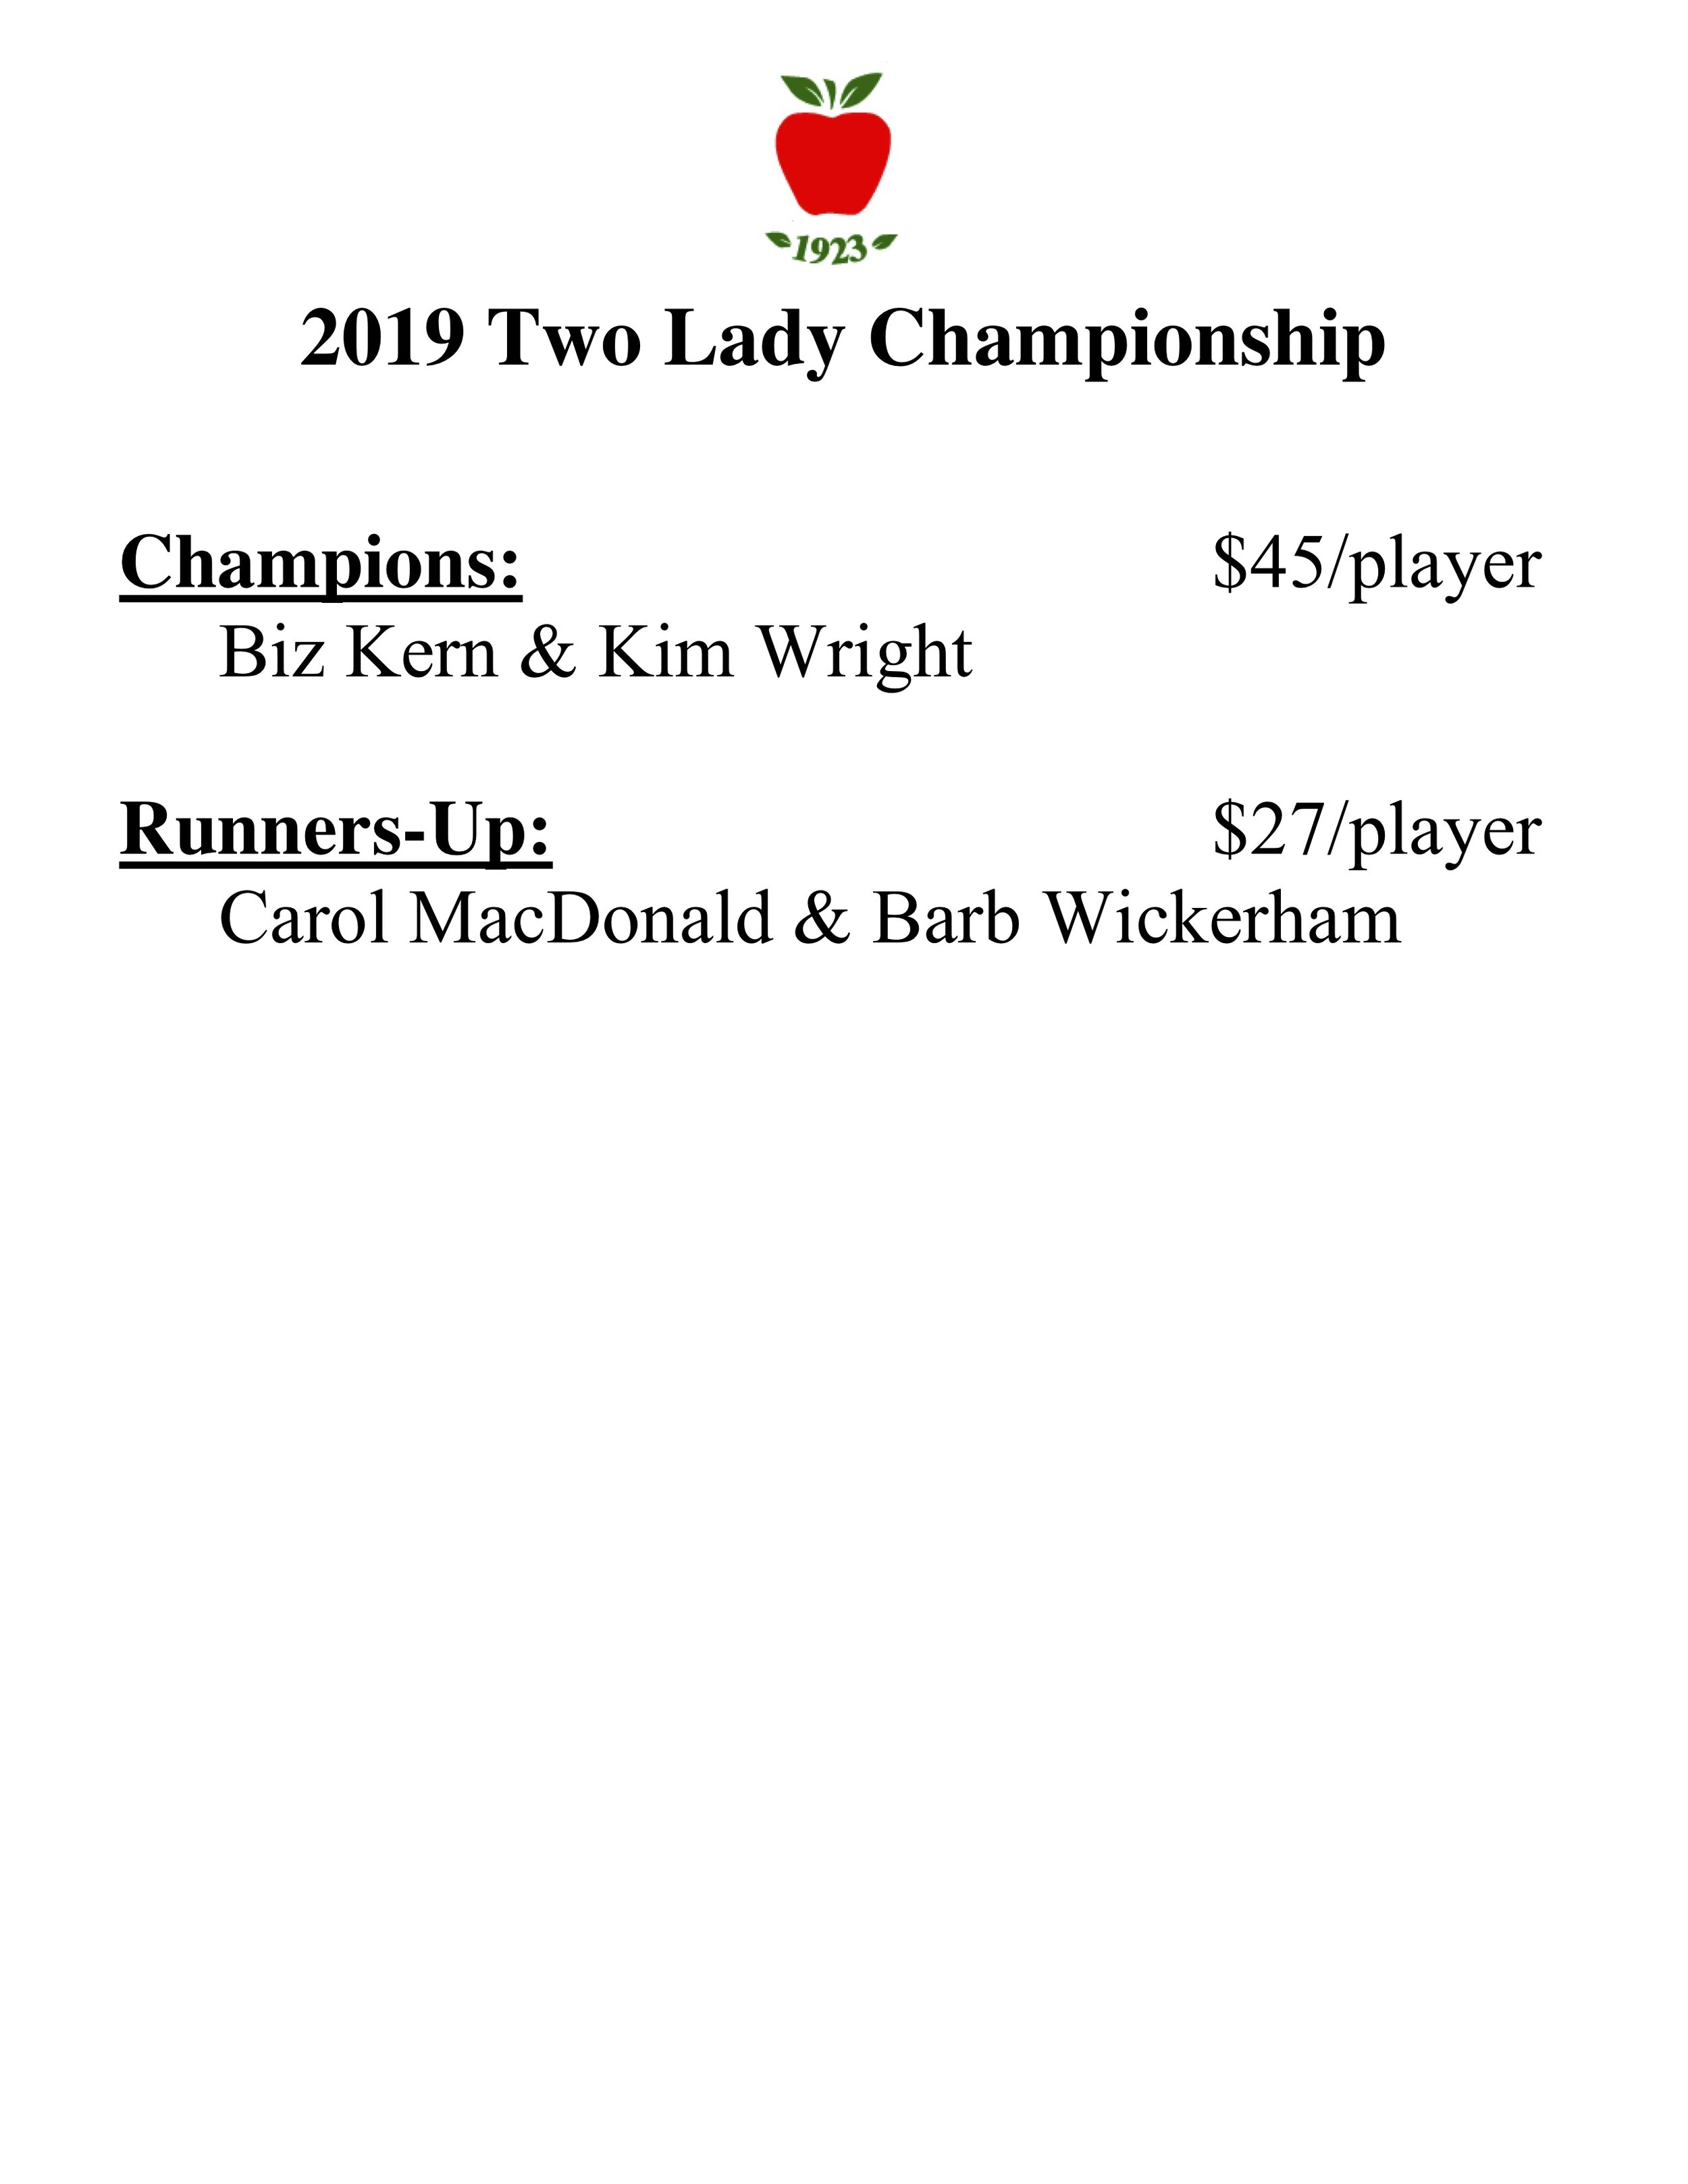 2019 two lady championship results.jpg